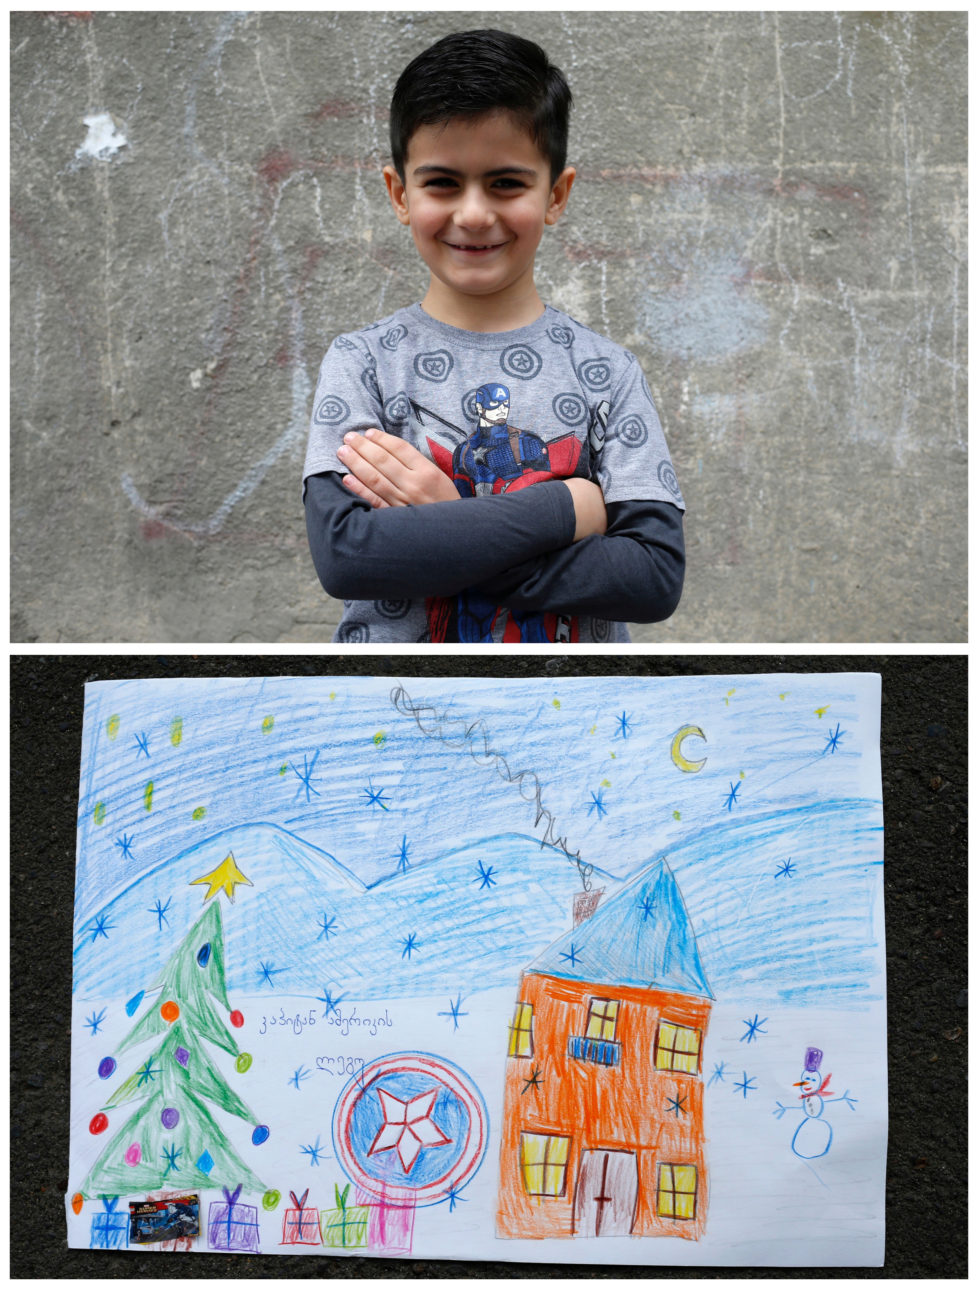 """A combination picture shows Sandro, 6, posing for a photograph (top) and his drawing of what he wants to get from Santa, in Tbilisi, Georgia, November 19, 2016. Sandro wants to get """"Captain America"""" Lego set. He believes Santa can see his drawing and guess what he wants. He is waiting for his gift to be found under the Christmas tree. Reuters photographers around the world asked children to draw what they wanted to receive from Santa for Christmas. REUTERS/David Mdzinarishvili SEARCH """"CHRISTMAS WISHES"""" FOR THIS STORY. SEARCH """"WIDER IMAGE"""" FOR ALL STORIES. - RTSV37X"""